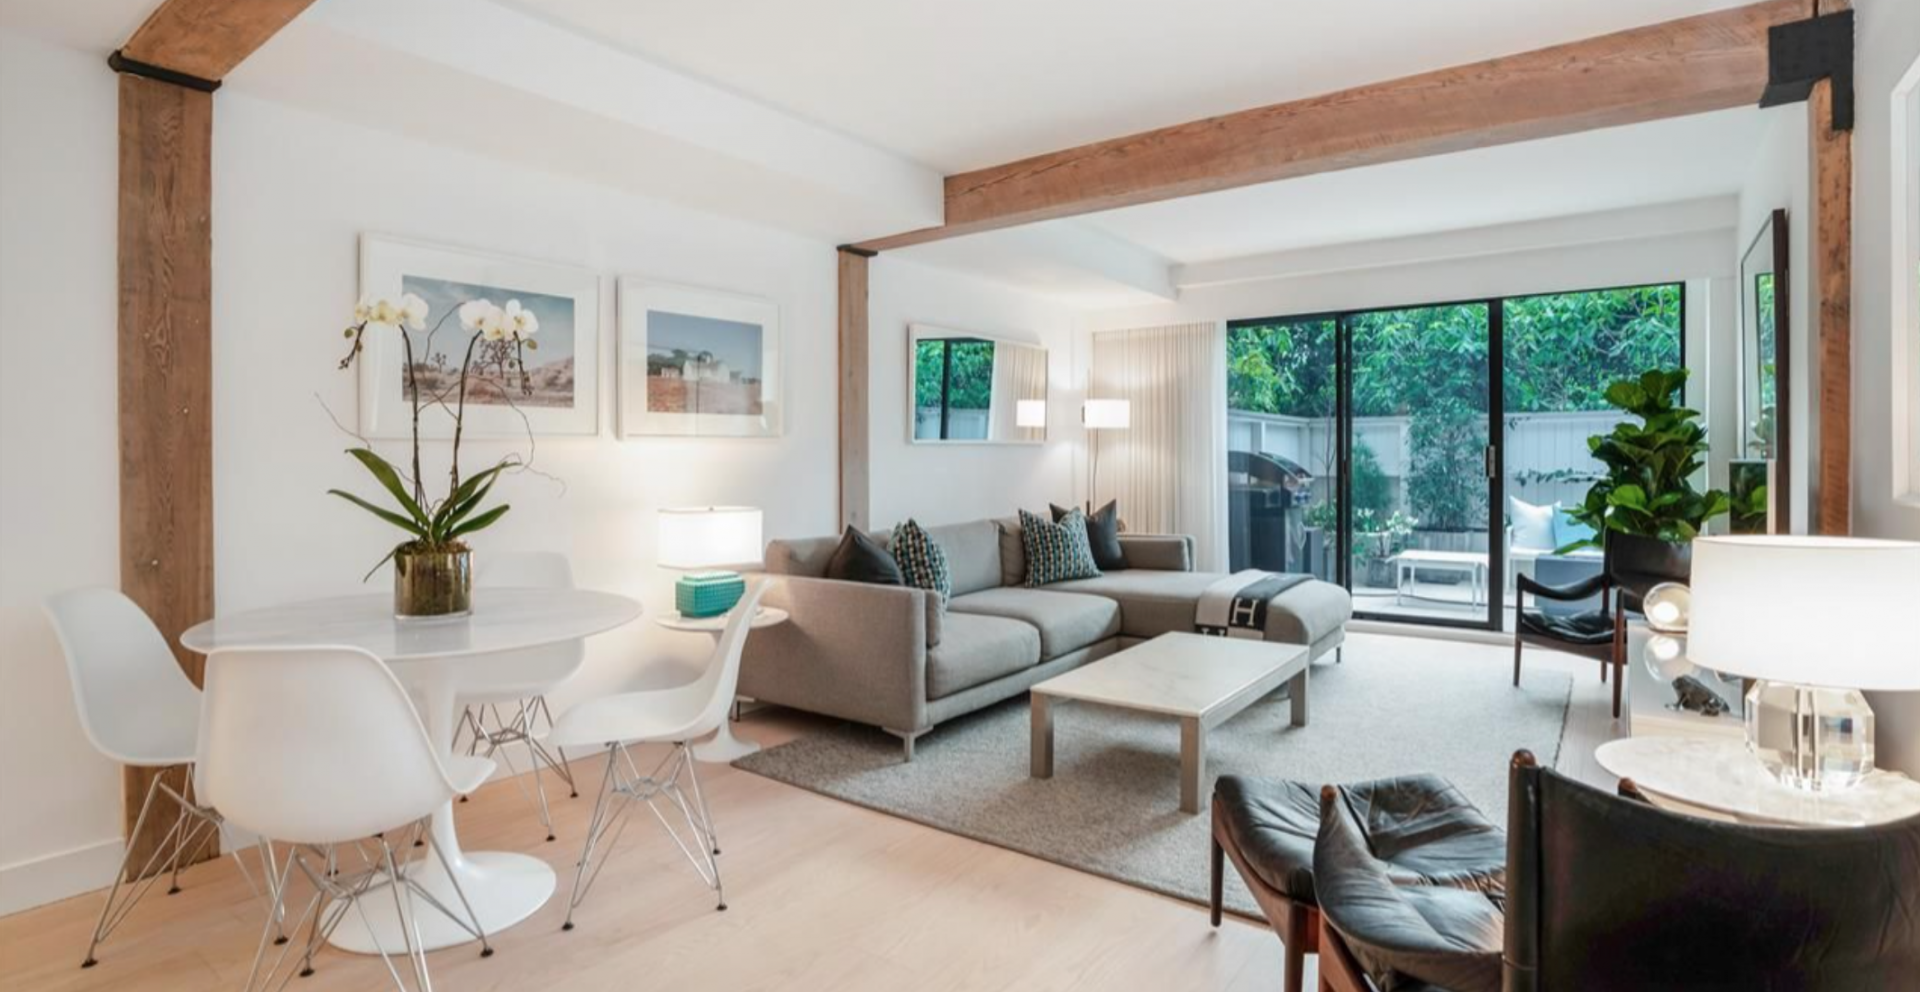 1970s Vancouver condo sells for 24% over asking price, with 15 offers